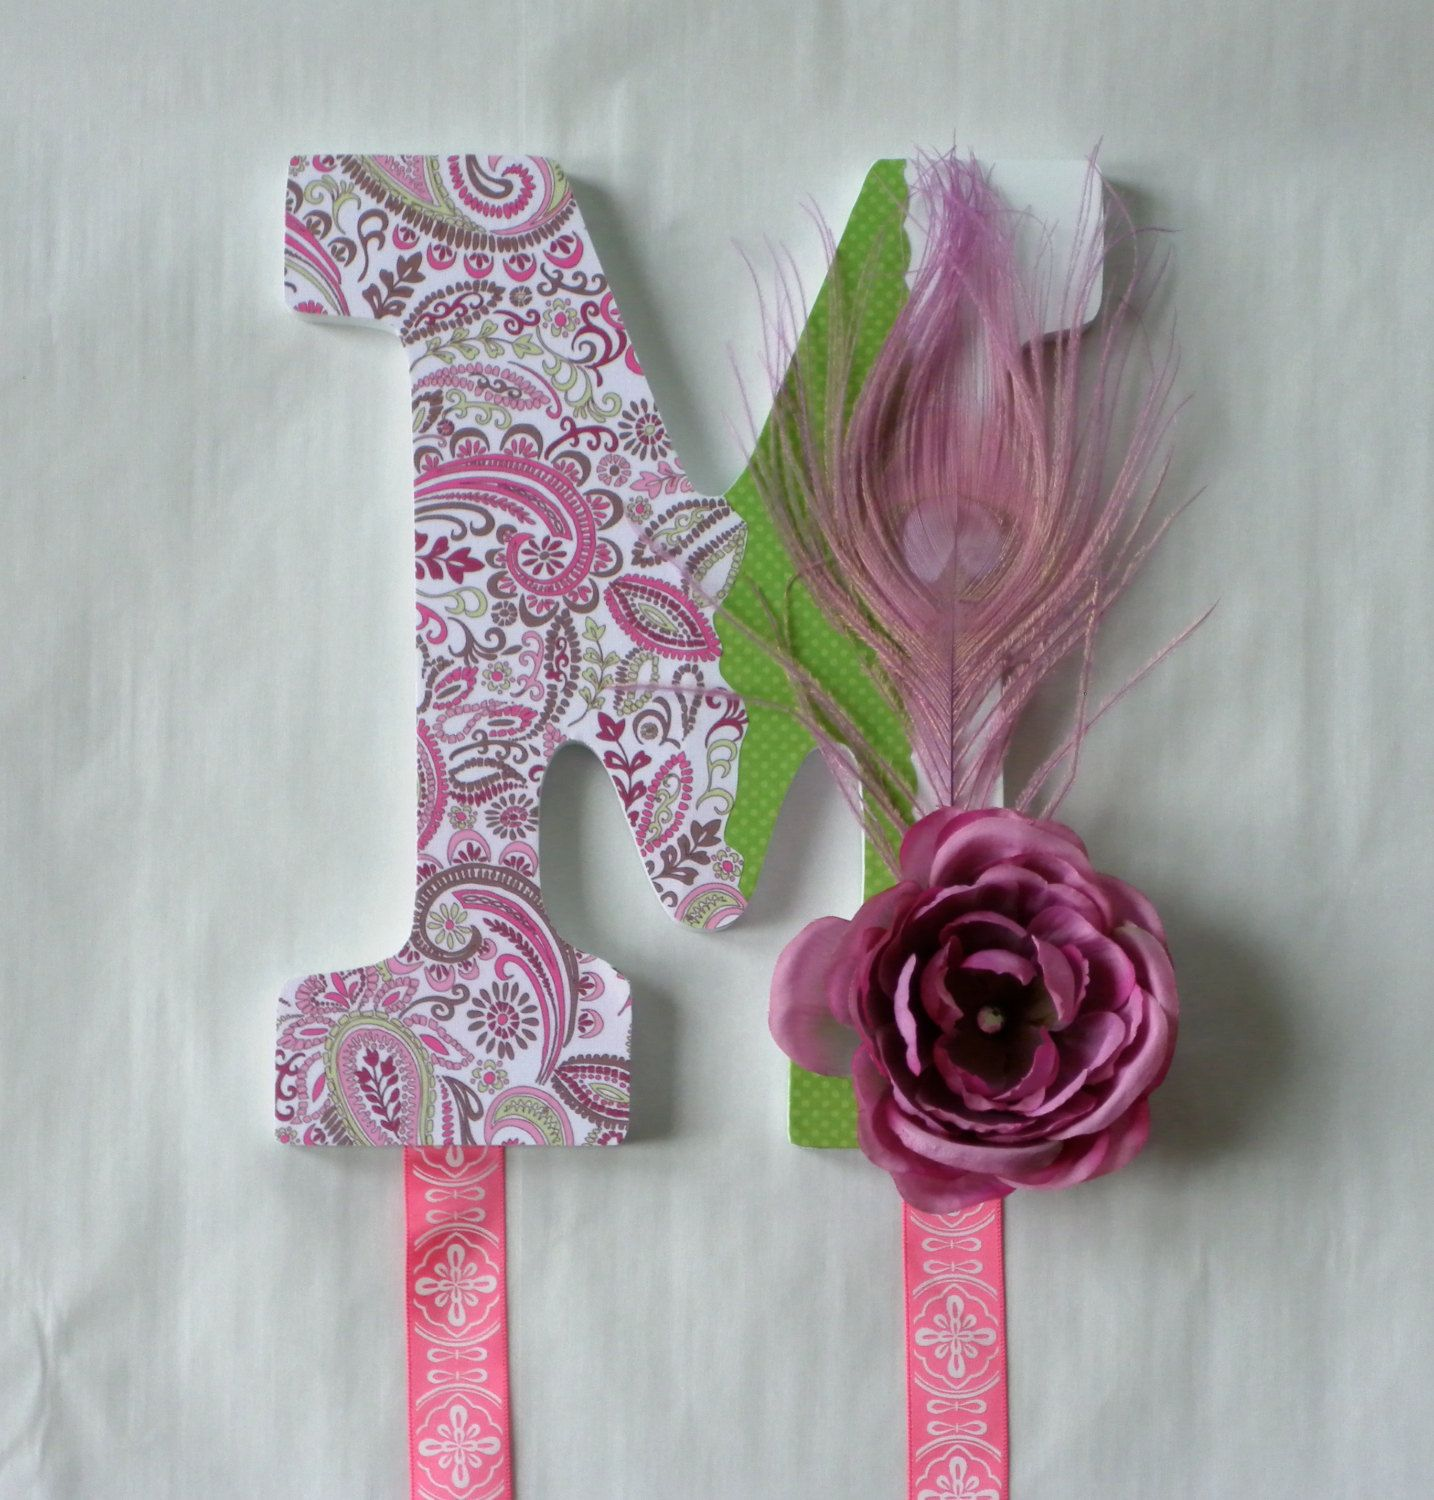 Custom Wooden Letter Hair Bow Holders Wall Hanging by LetterChic, $25.00